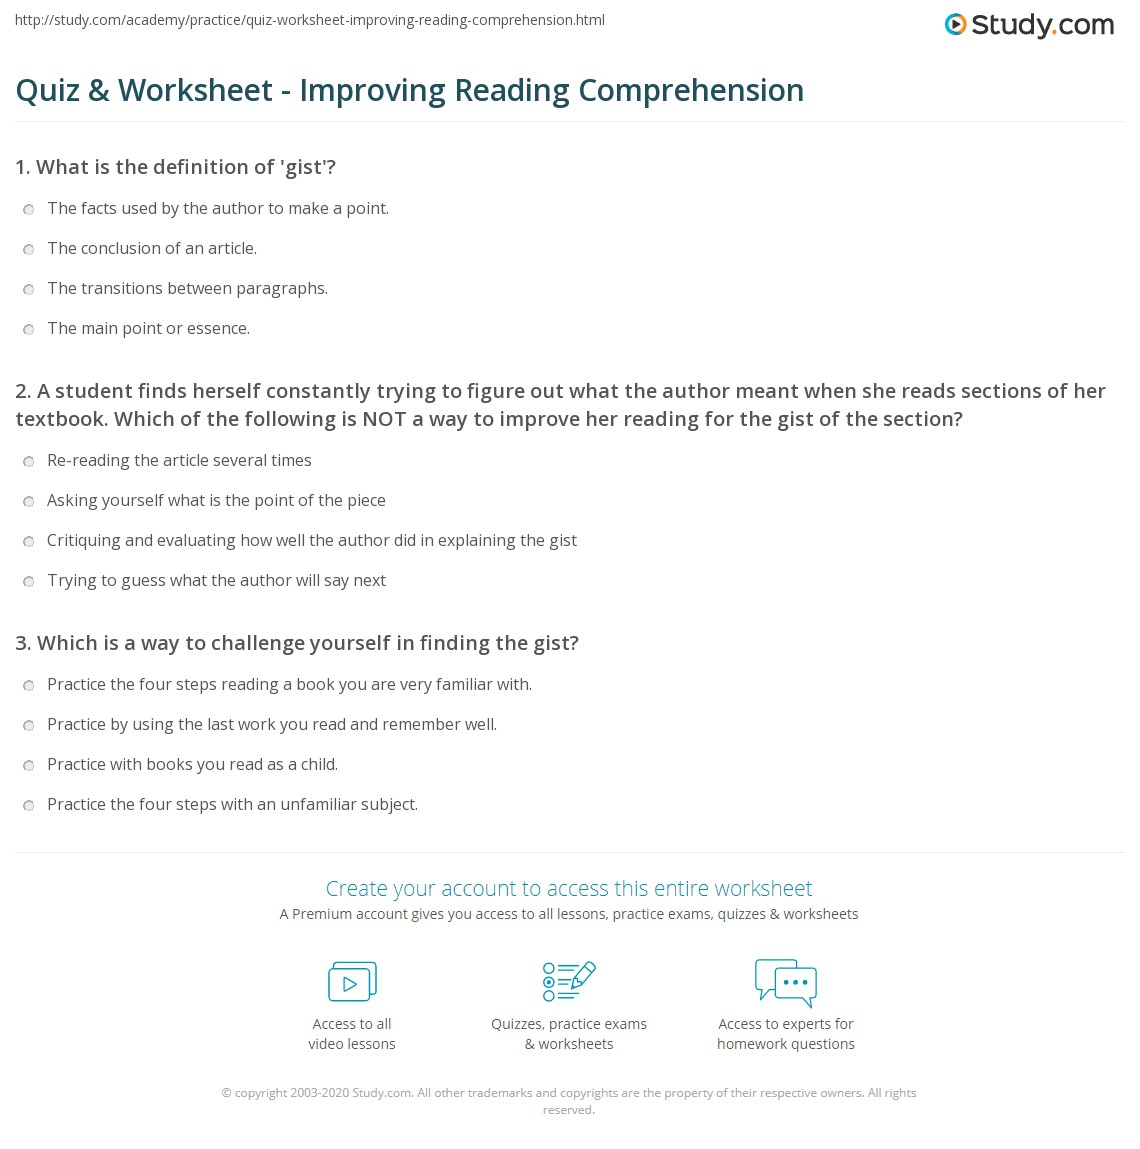 quiz worksheet improving reading comprehension study com 1 a student finds herself constantly trying to figure out what the author meant when she reads sections of her textbook which of the following is not a